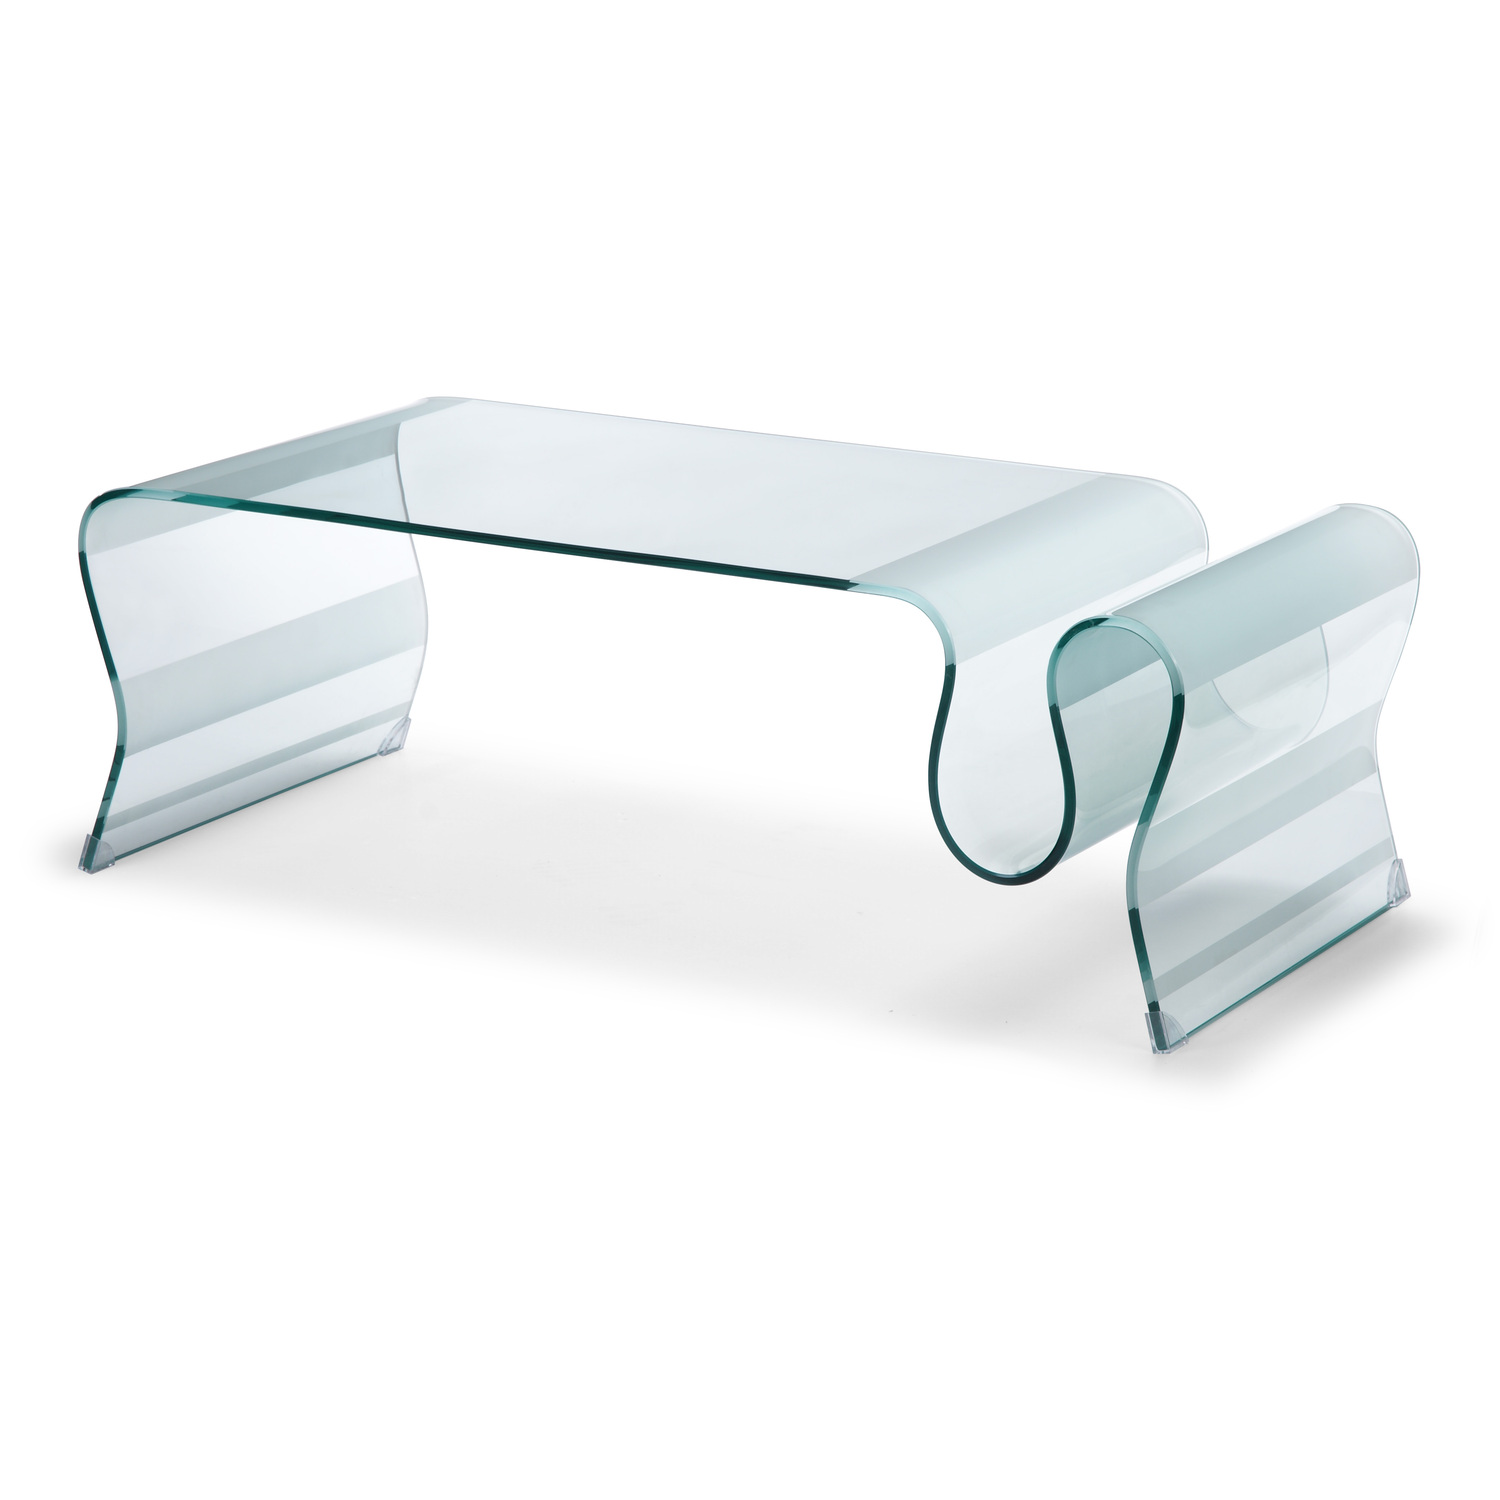 Zuo modern discovery coffee table clear glass by oj commerce 404102 Glass contemporary coffee table